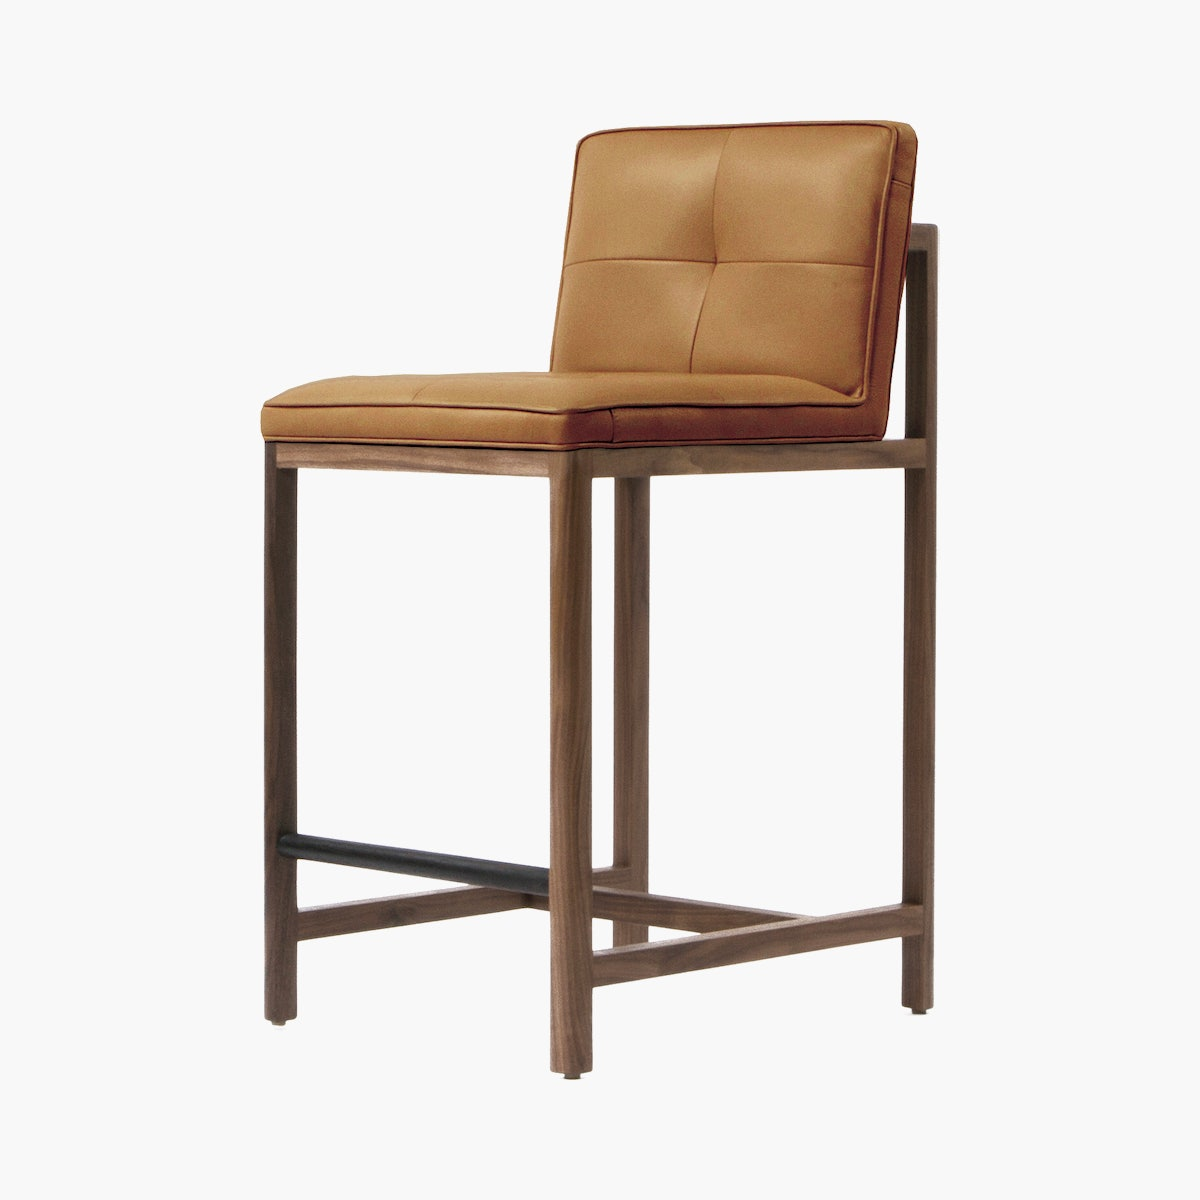 Wood Frame Stool